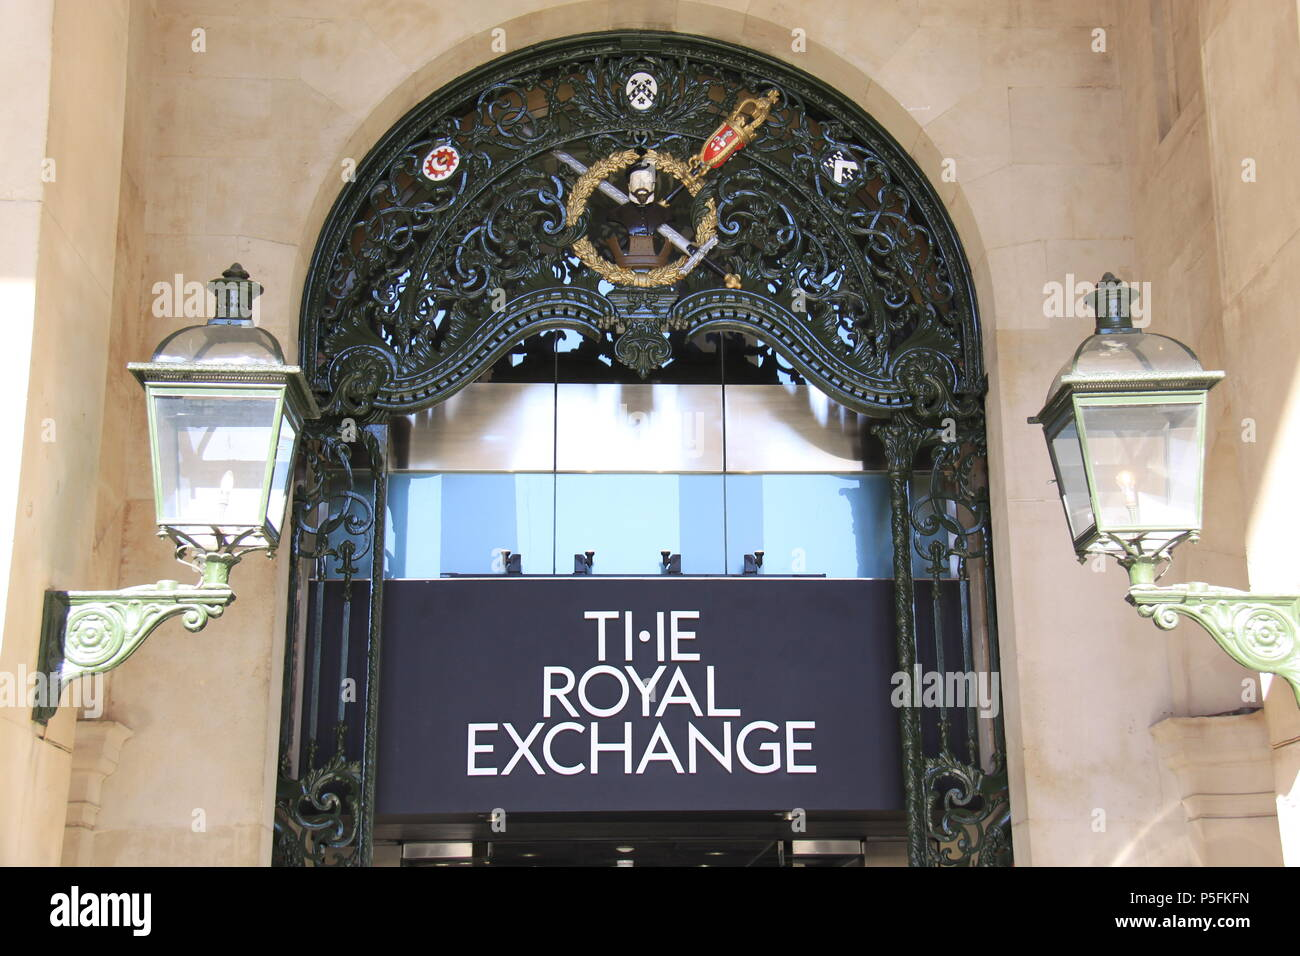 The Royal Exchange (a grand trading bourse turned into a luxury shopping centre above Bank station), London, England, UK, PETER GRANT - Stock Image